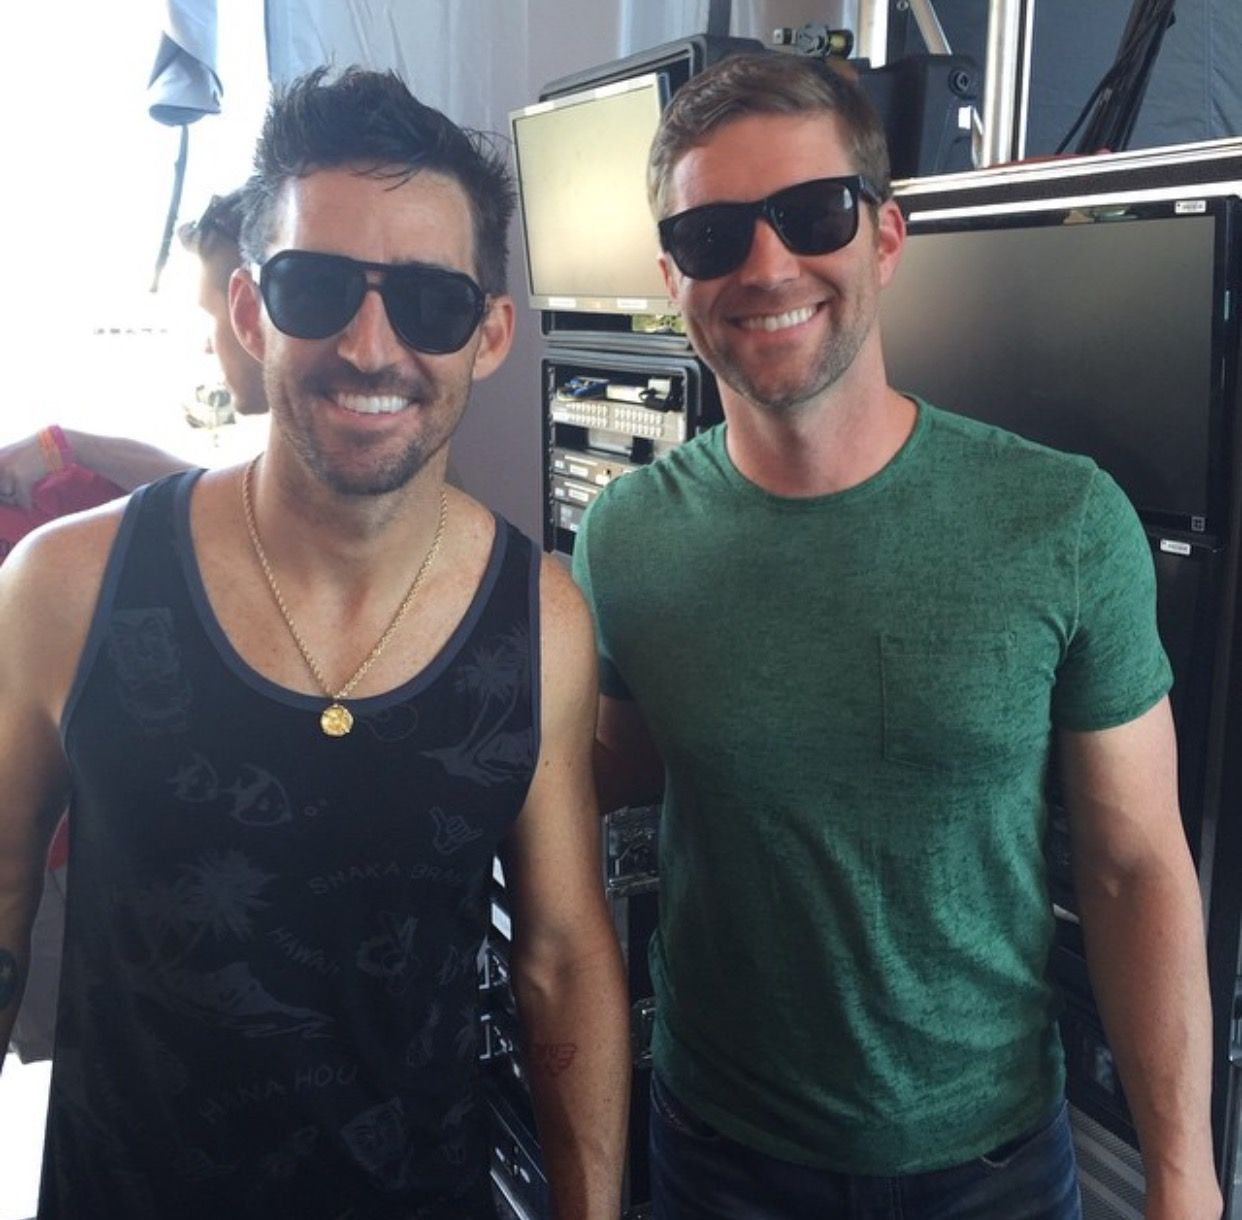 Jake Owen List Of Songs Cheap jake owen with my favorite country artist josh turner | jake owen